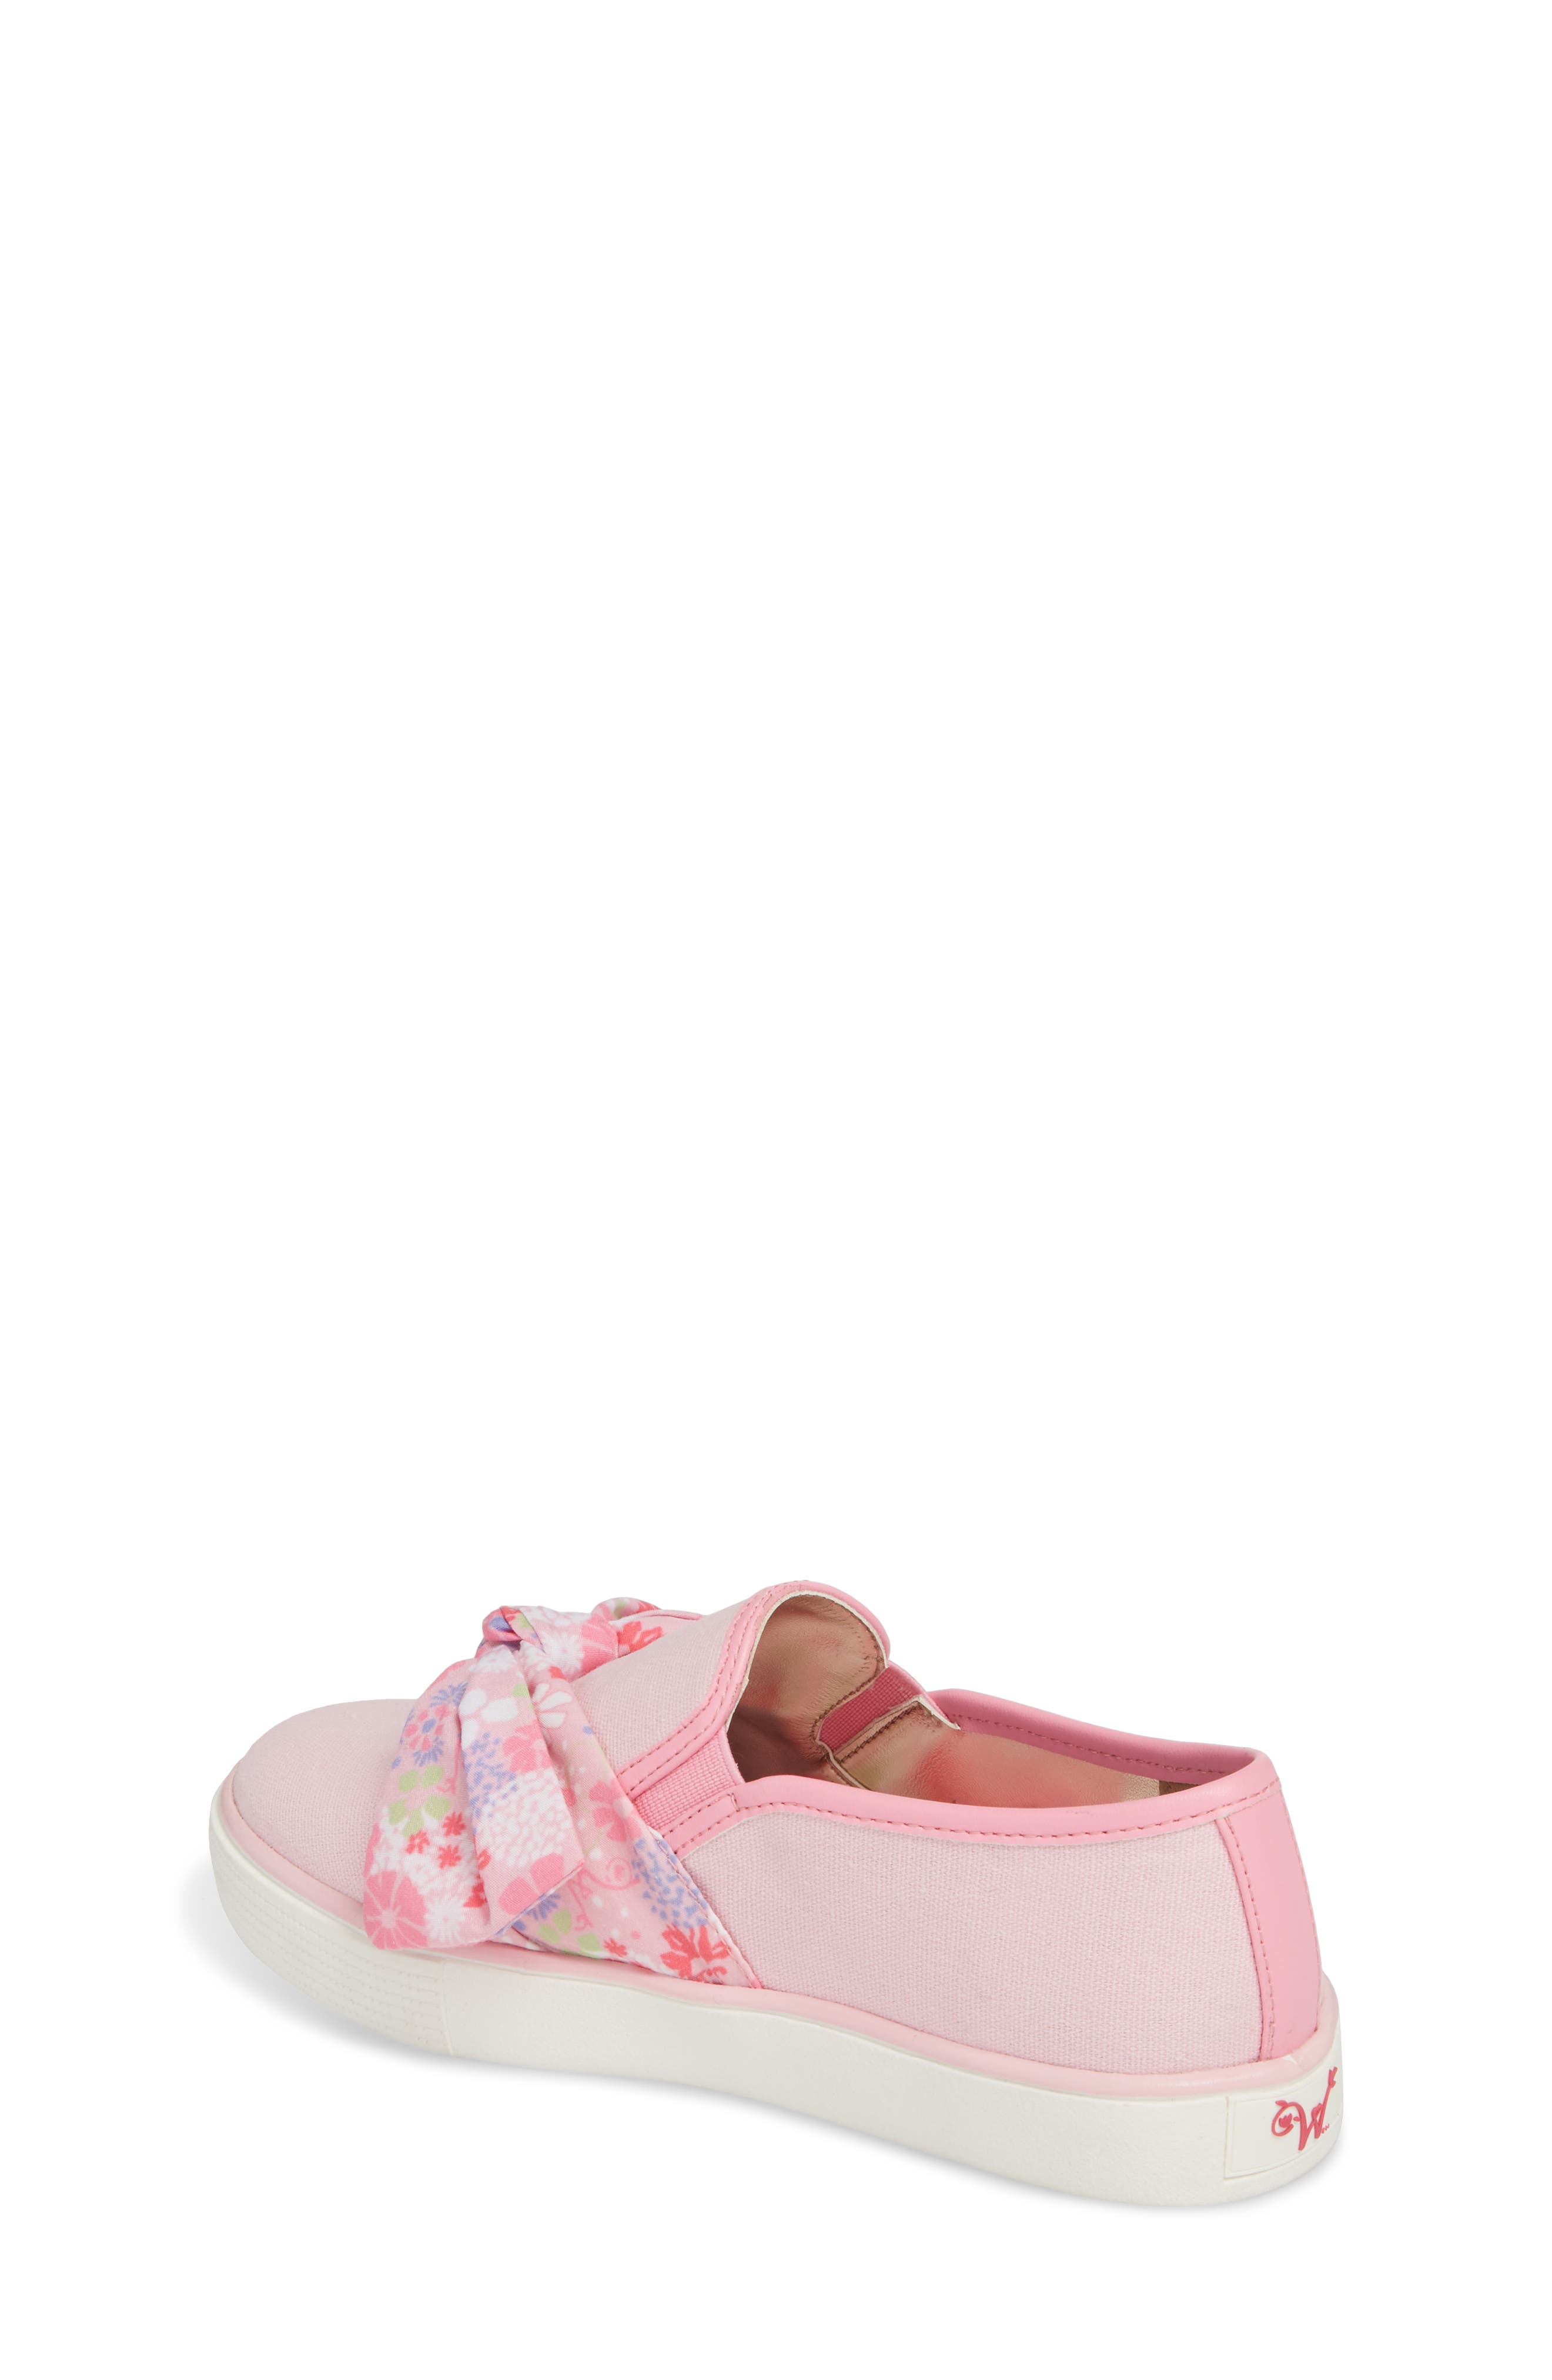 Ashlyn Bow Slip-On Sneaker,                             Alternate thumbnail 2, color,                             Orchid Pink